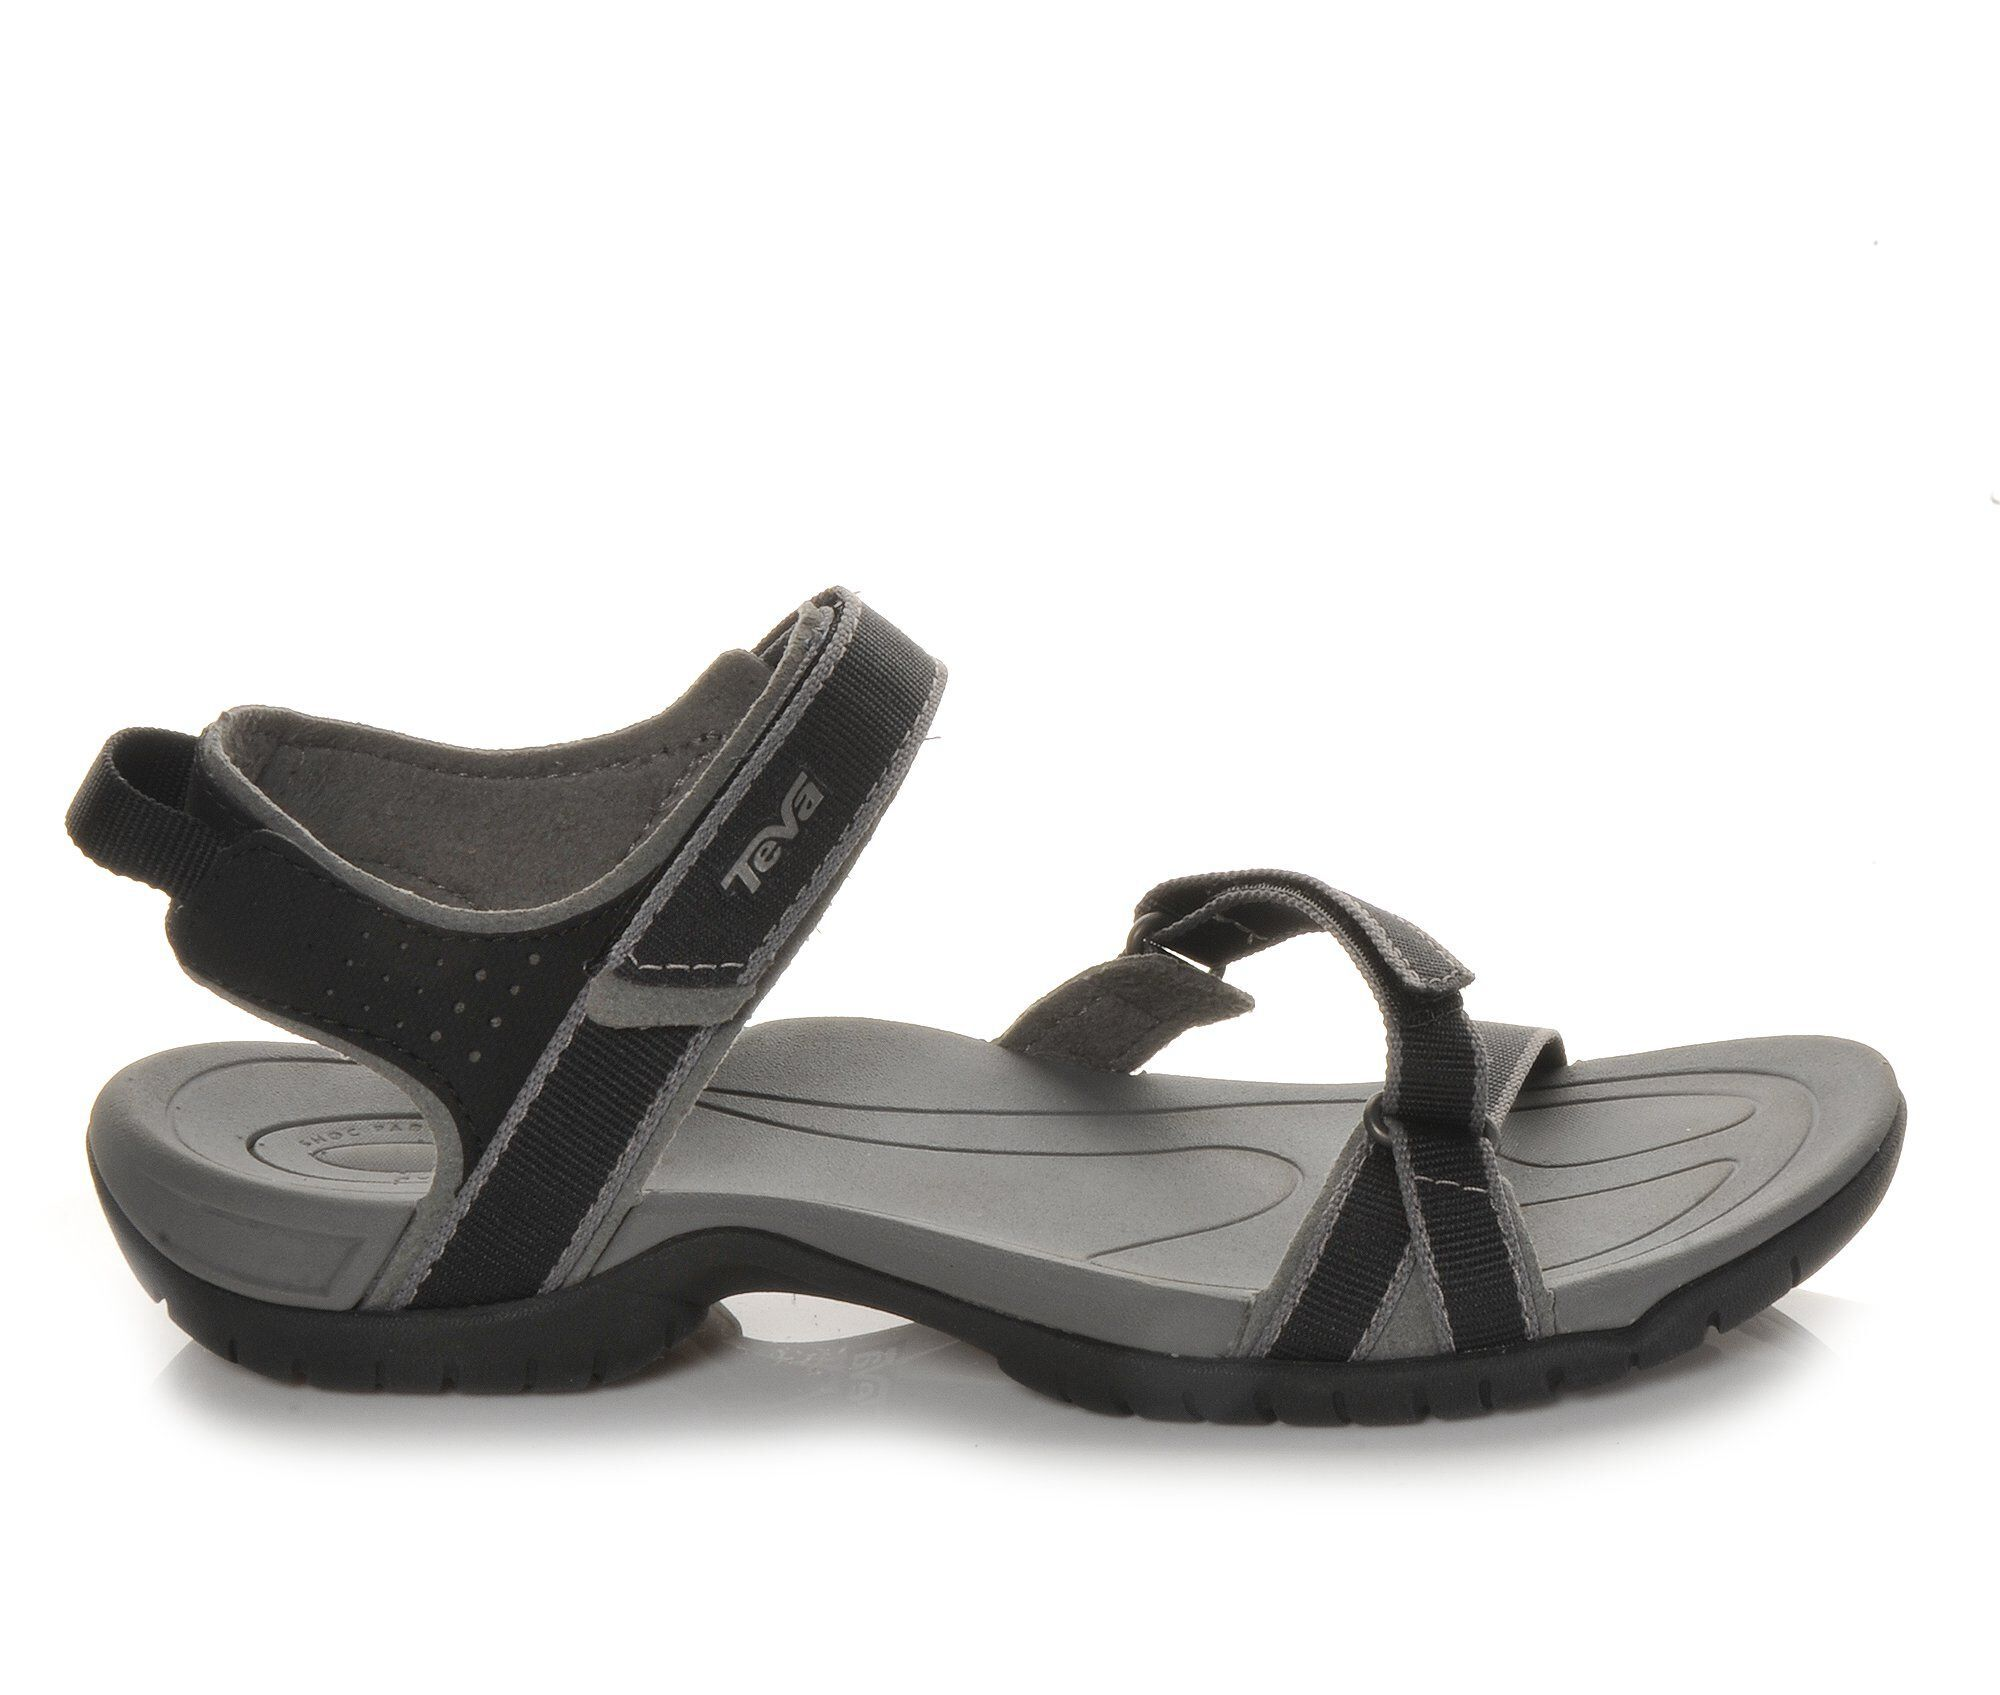 Teva Verra Womens Walking Sandals G19x2787